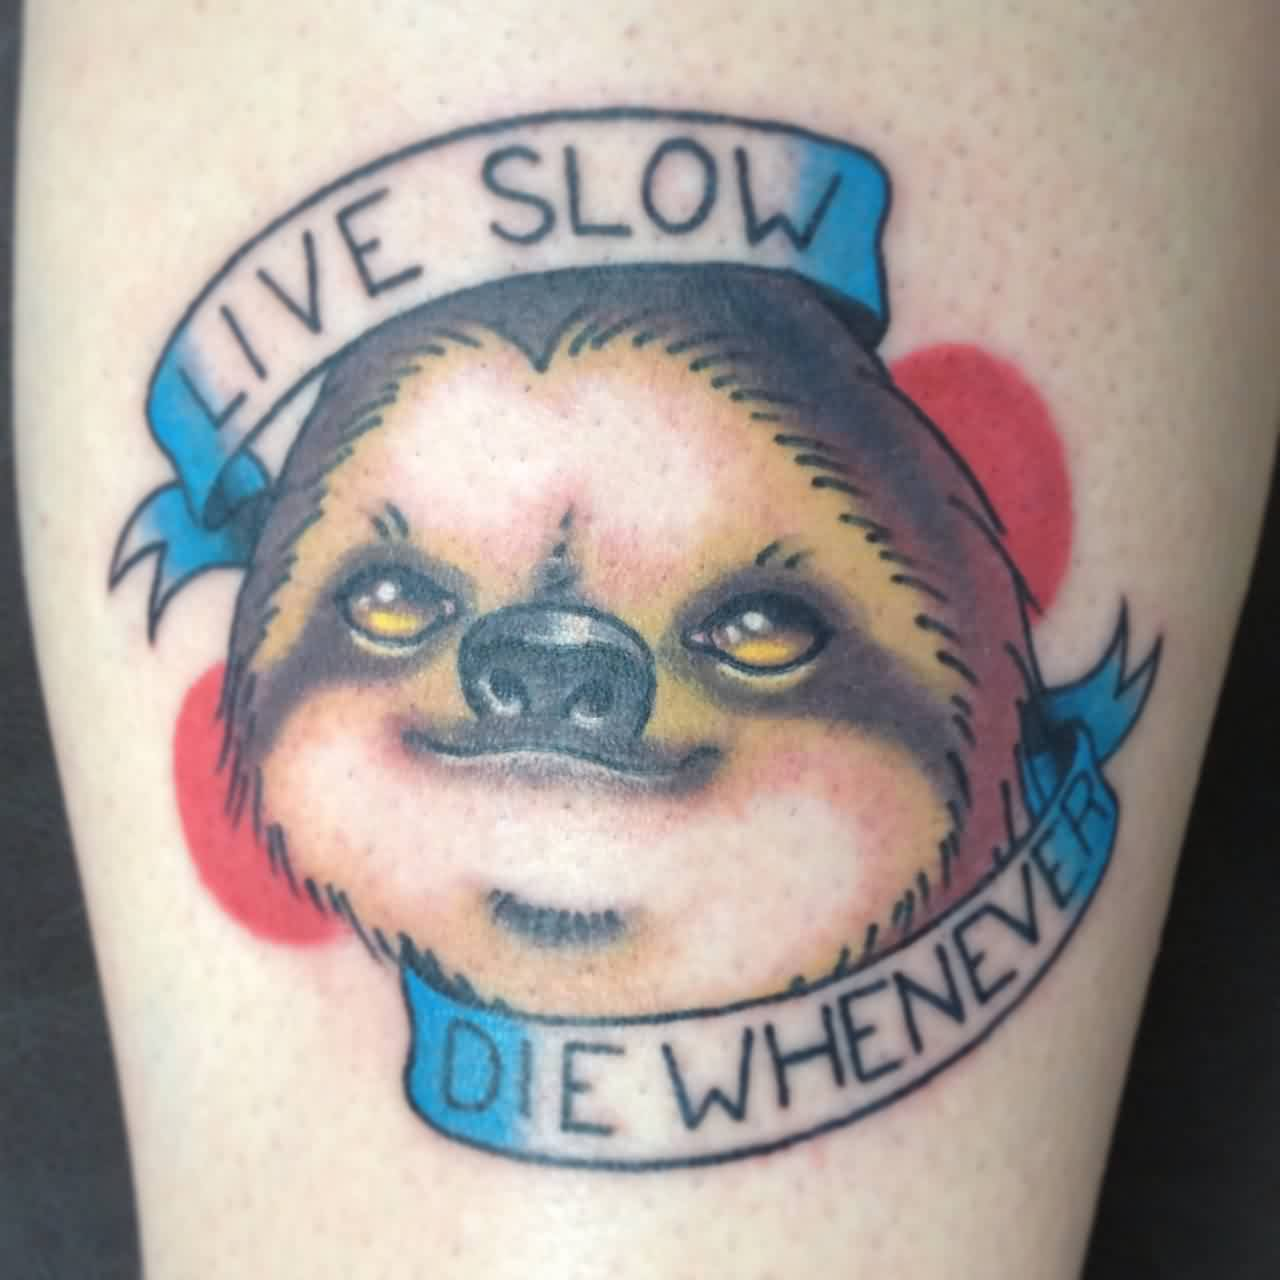 Live Slow Die Whenever - Animal Tattoo